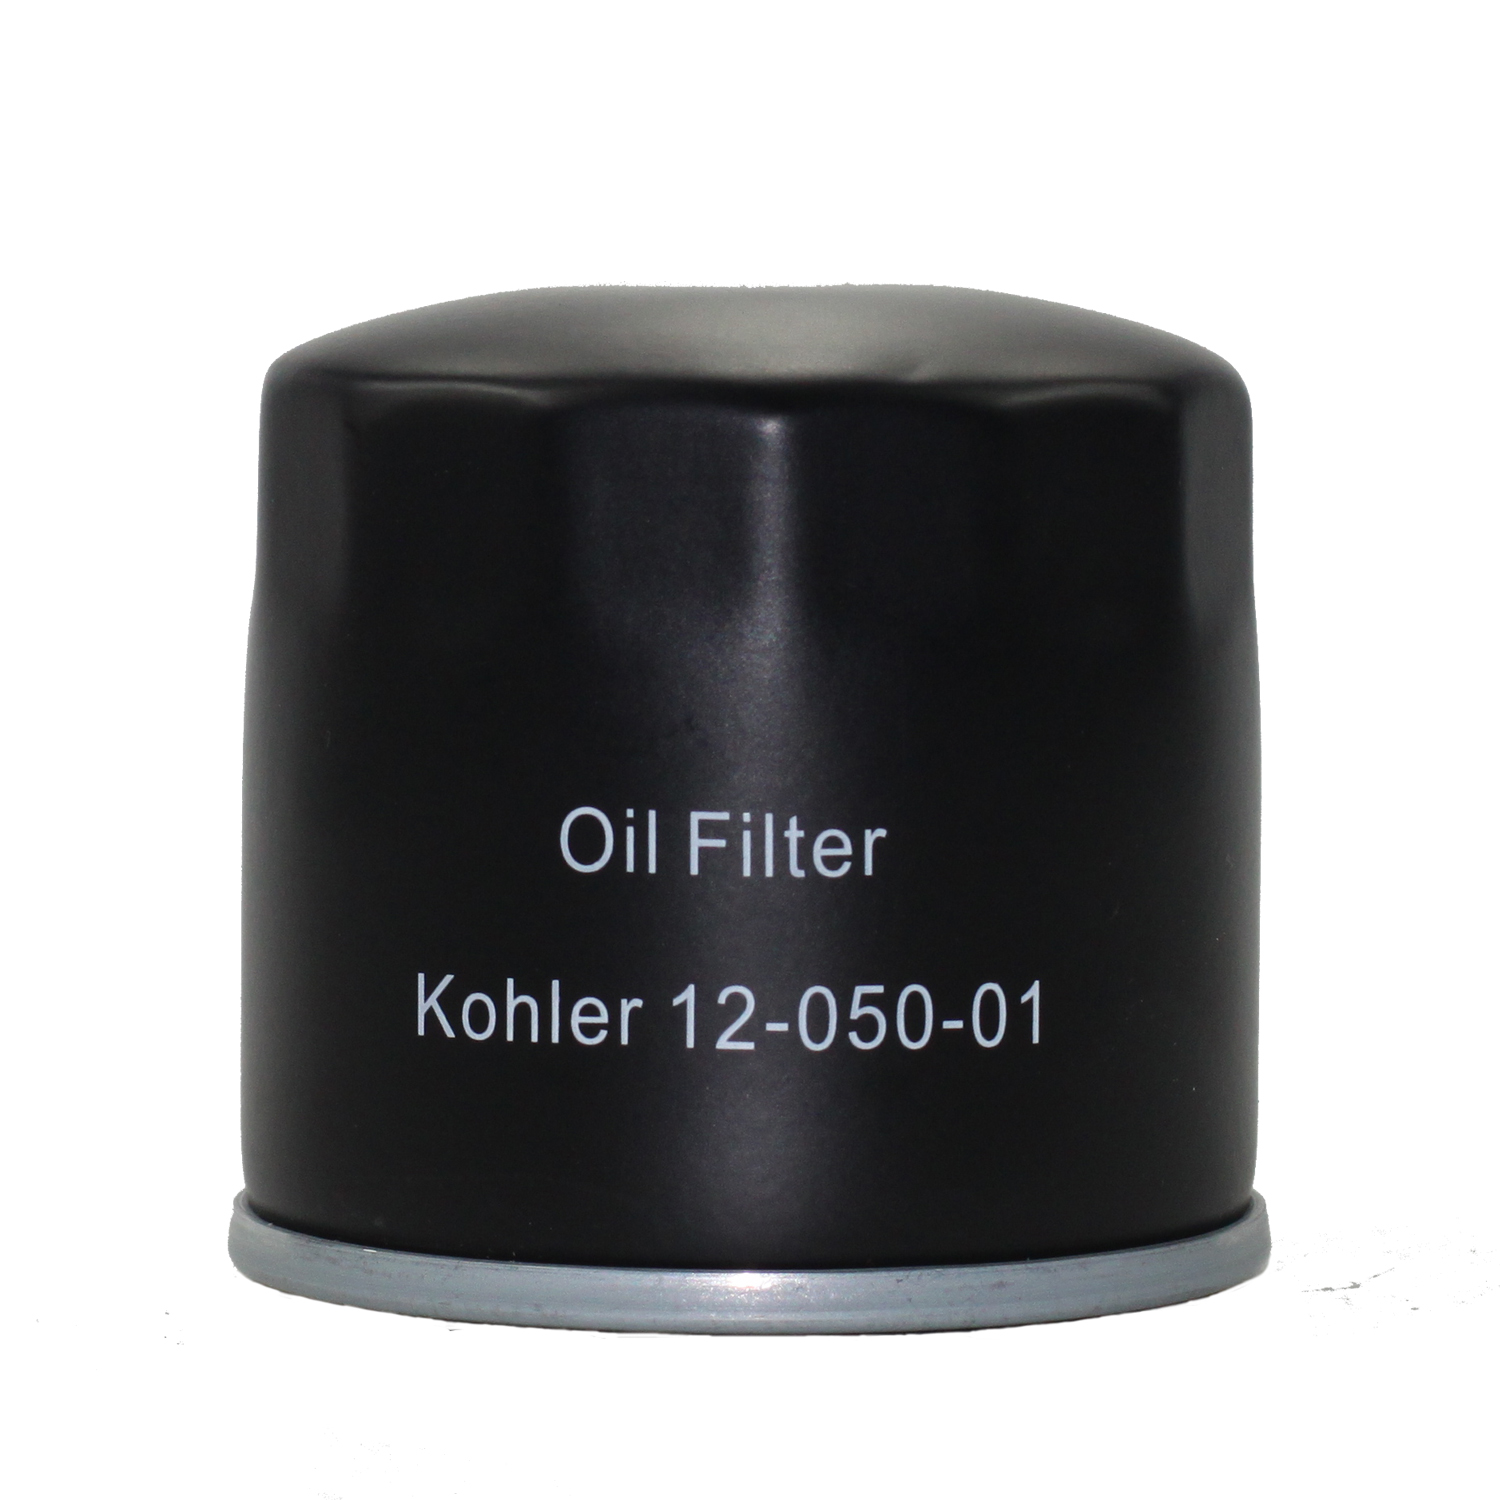 Replacement Oil Filter for Kohler 12 050 01, 12 050 08, Ariens 08200204, 21397200